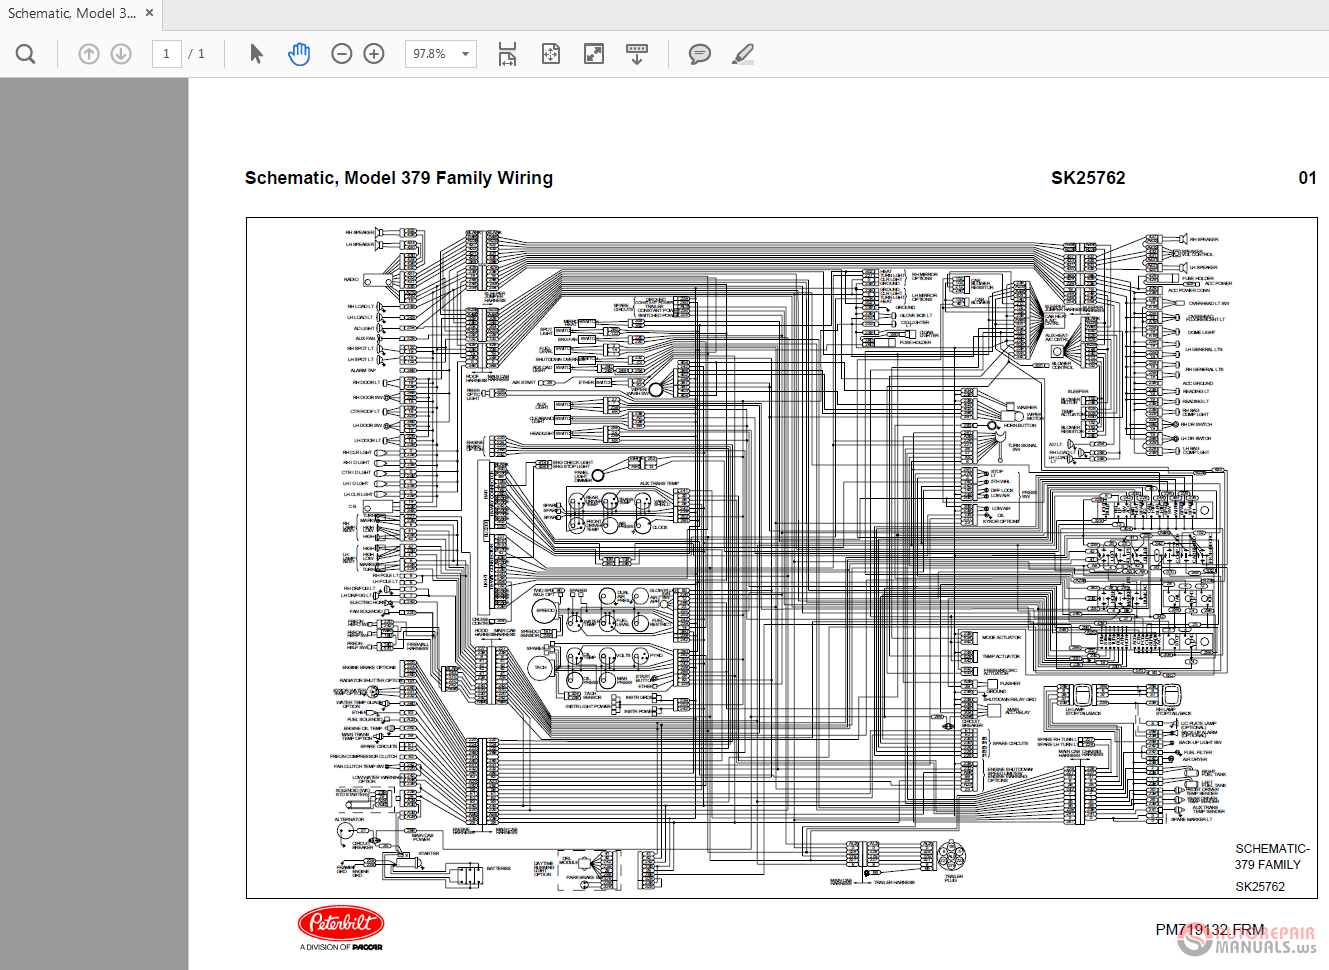 peterbilt 379 sk25762 family wiring diagrams | auto repair manual forum -  heavy equipment forums - download repair & workshop manual  autorepairmanuals.ws